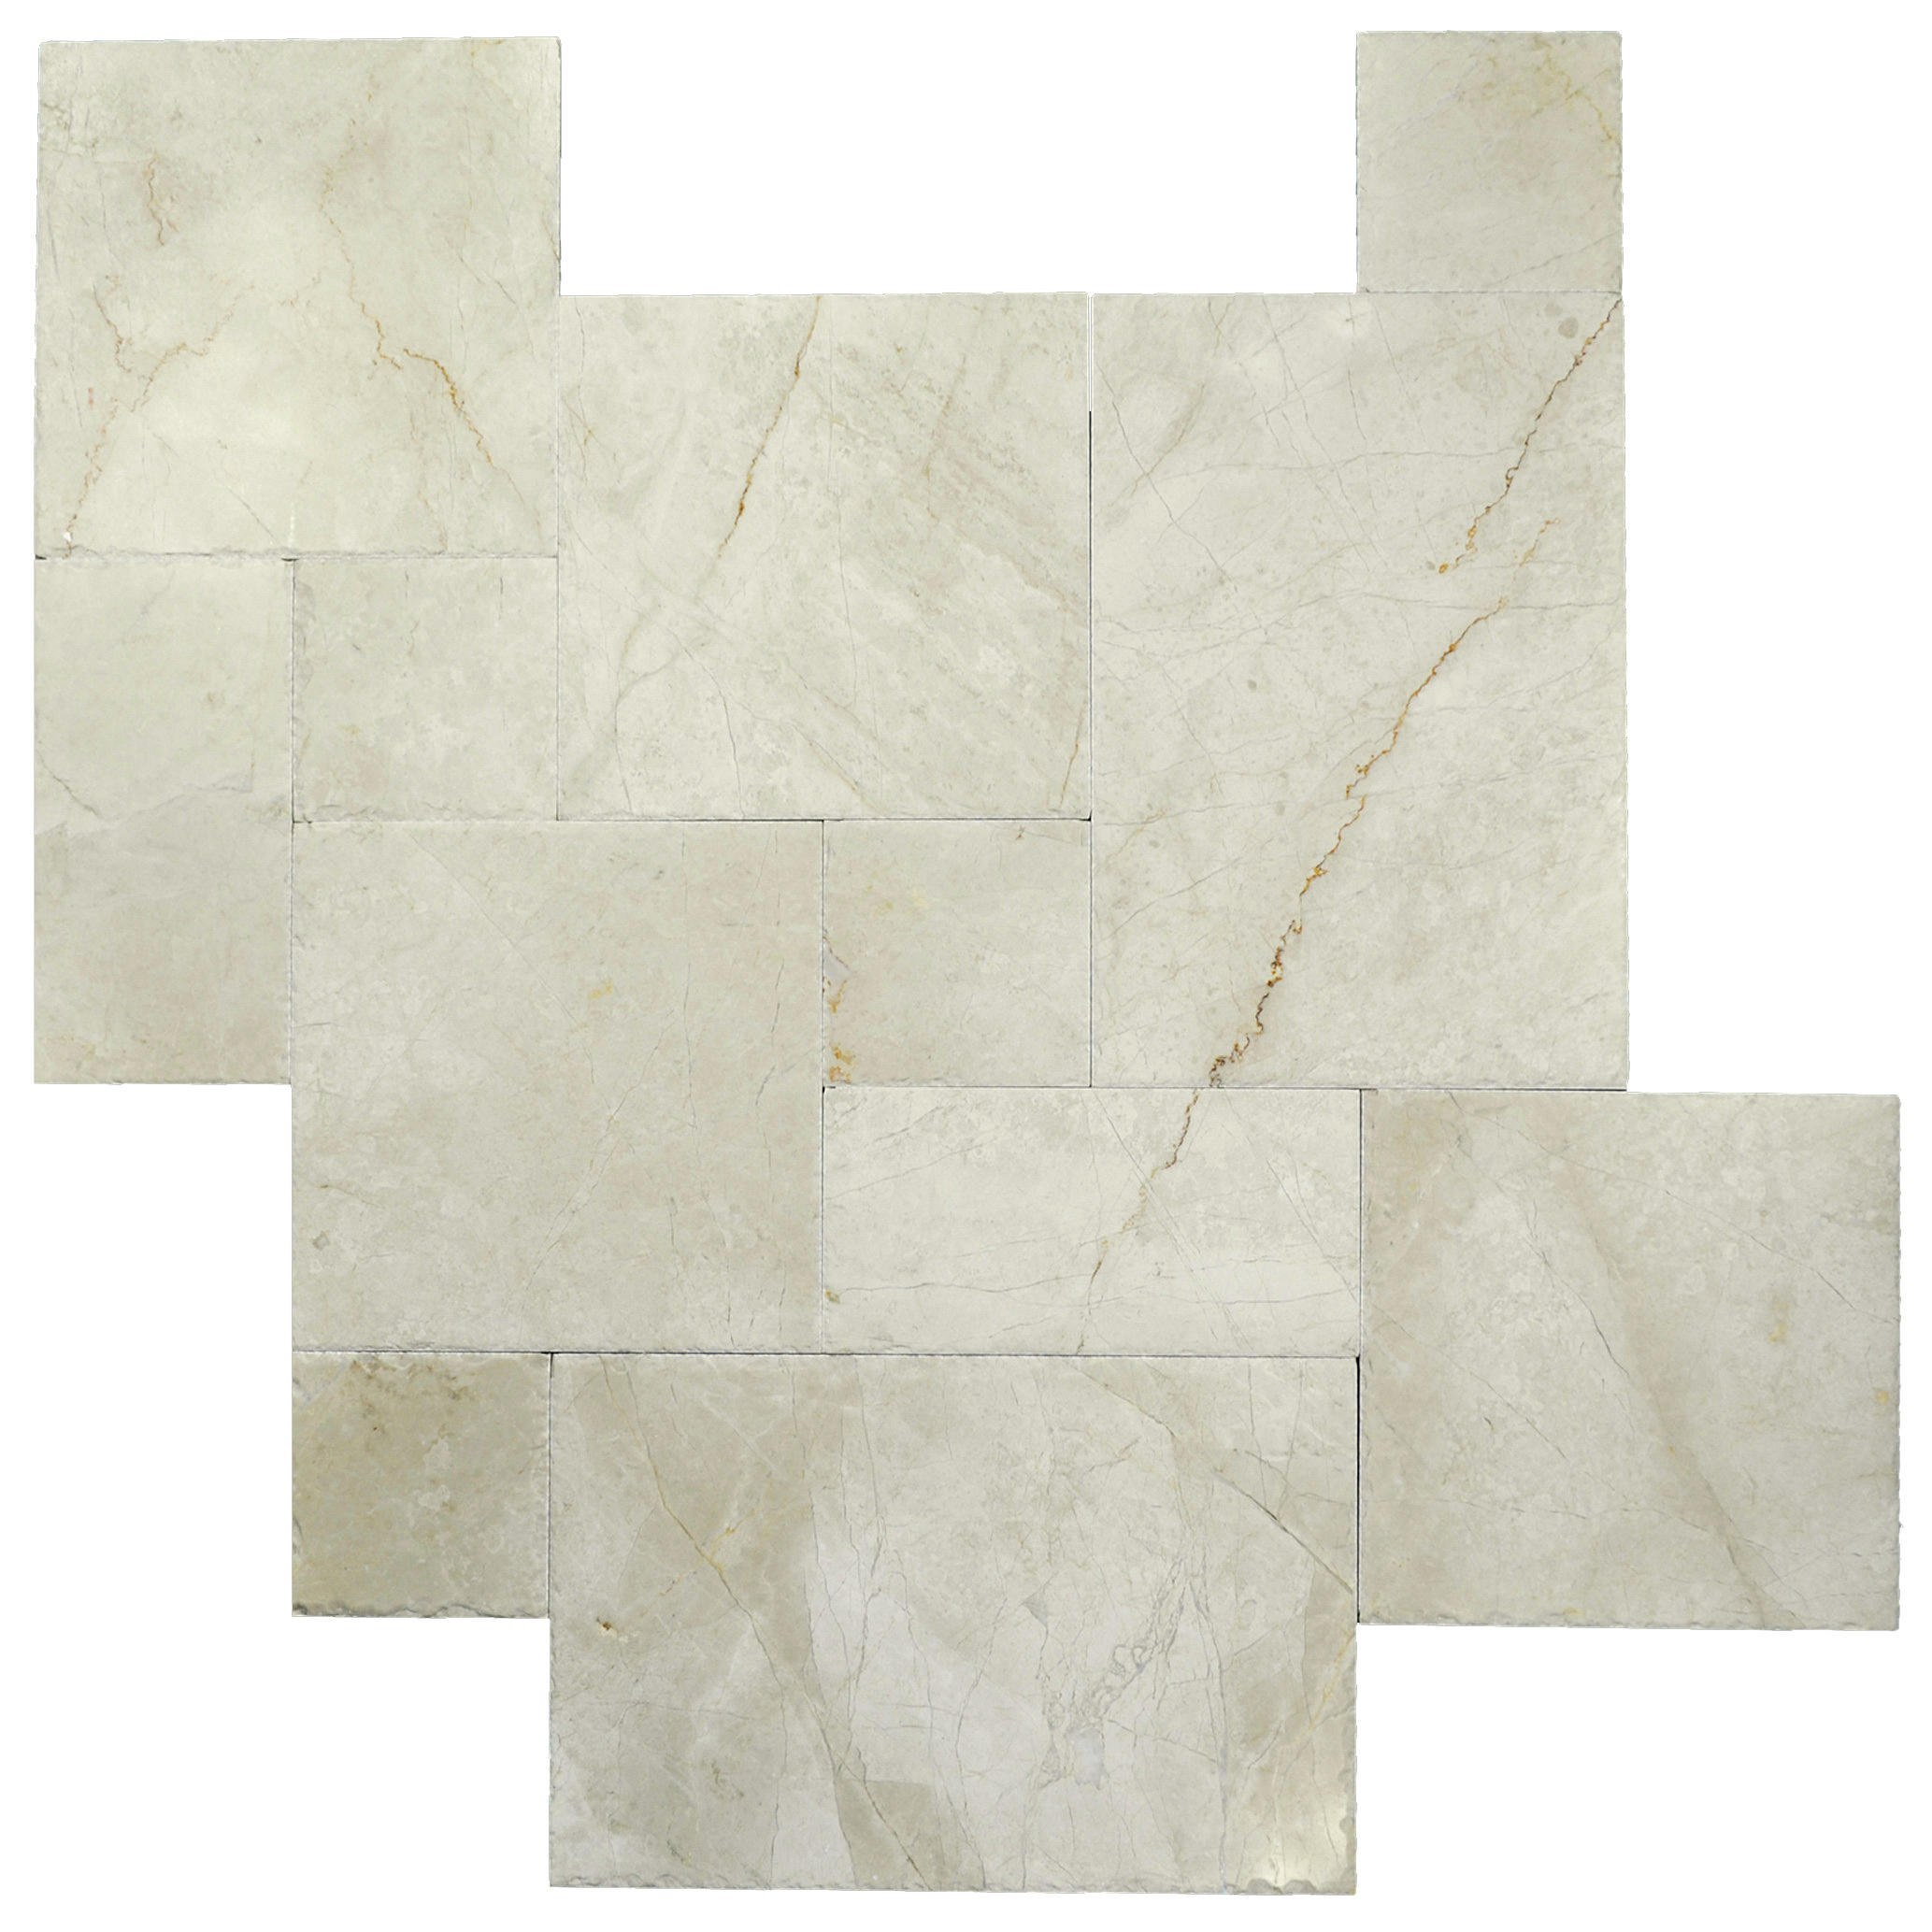 Cream Nouva Brushed Chiseled French Pattern Marble Tiles-Marble sale-Atlantic Stone Source